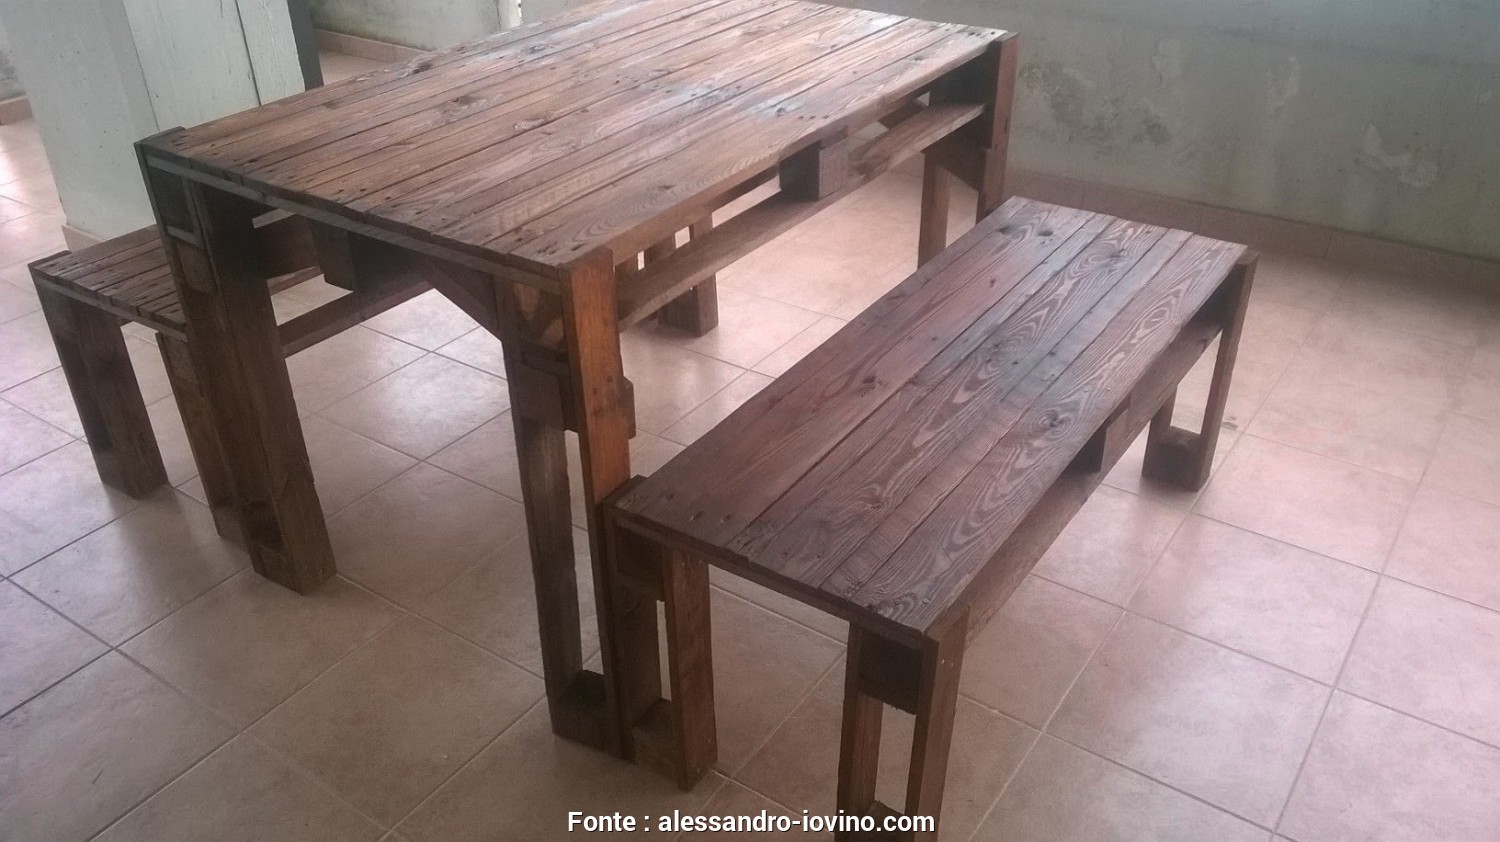 Costruire Un Tavolo, I Pallet, Costoso ... Meraviglioso Tavoli, Pallet COSTRUIRE, PANCHINA, I PALLETS Bench Made From Pallets YouTube Maxresdefault